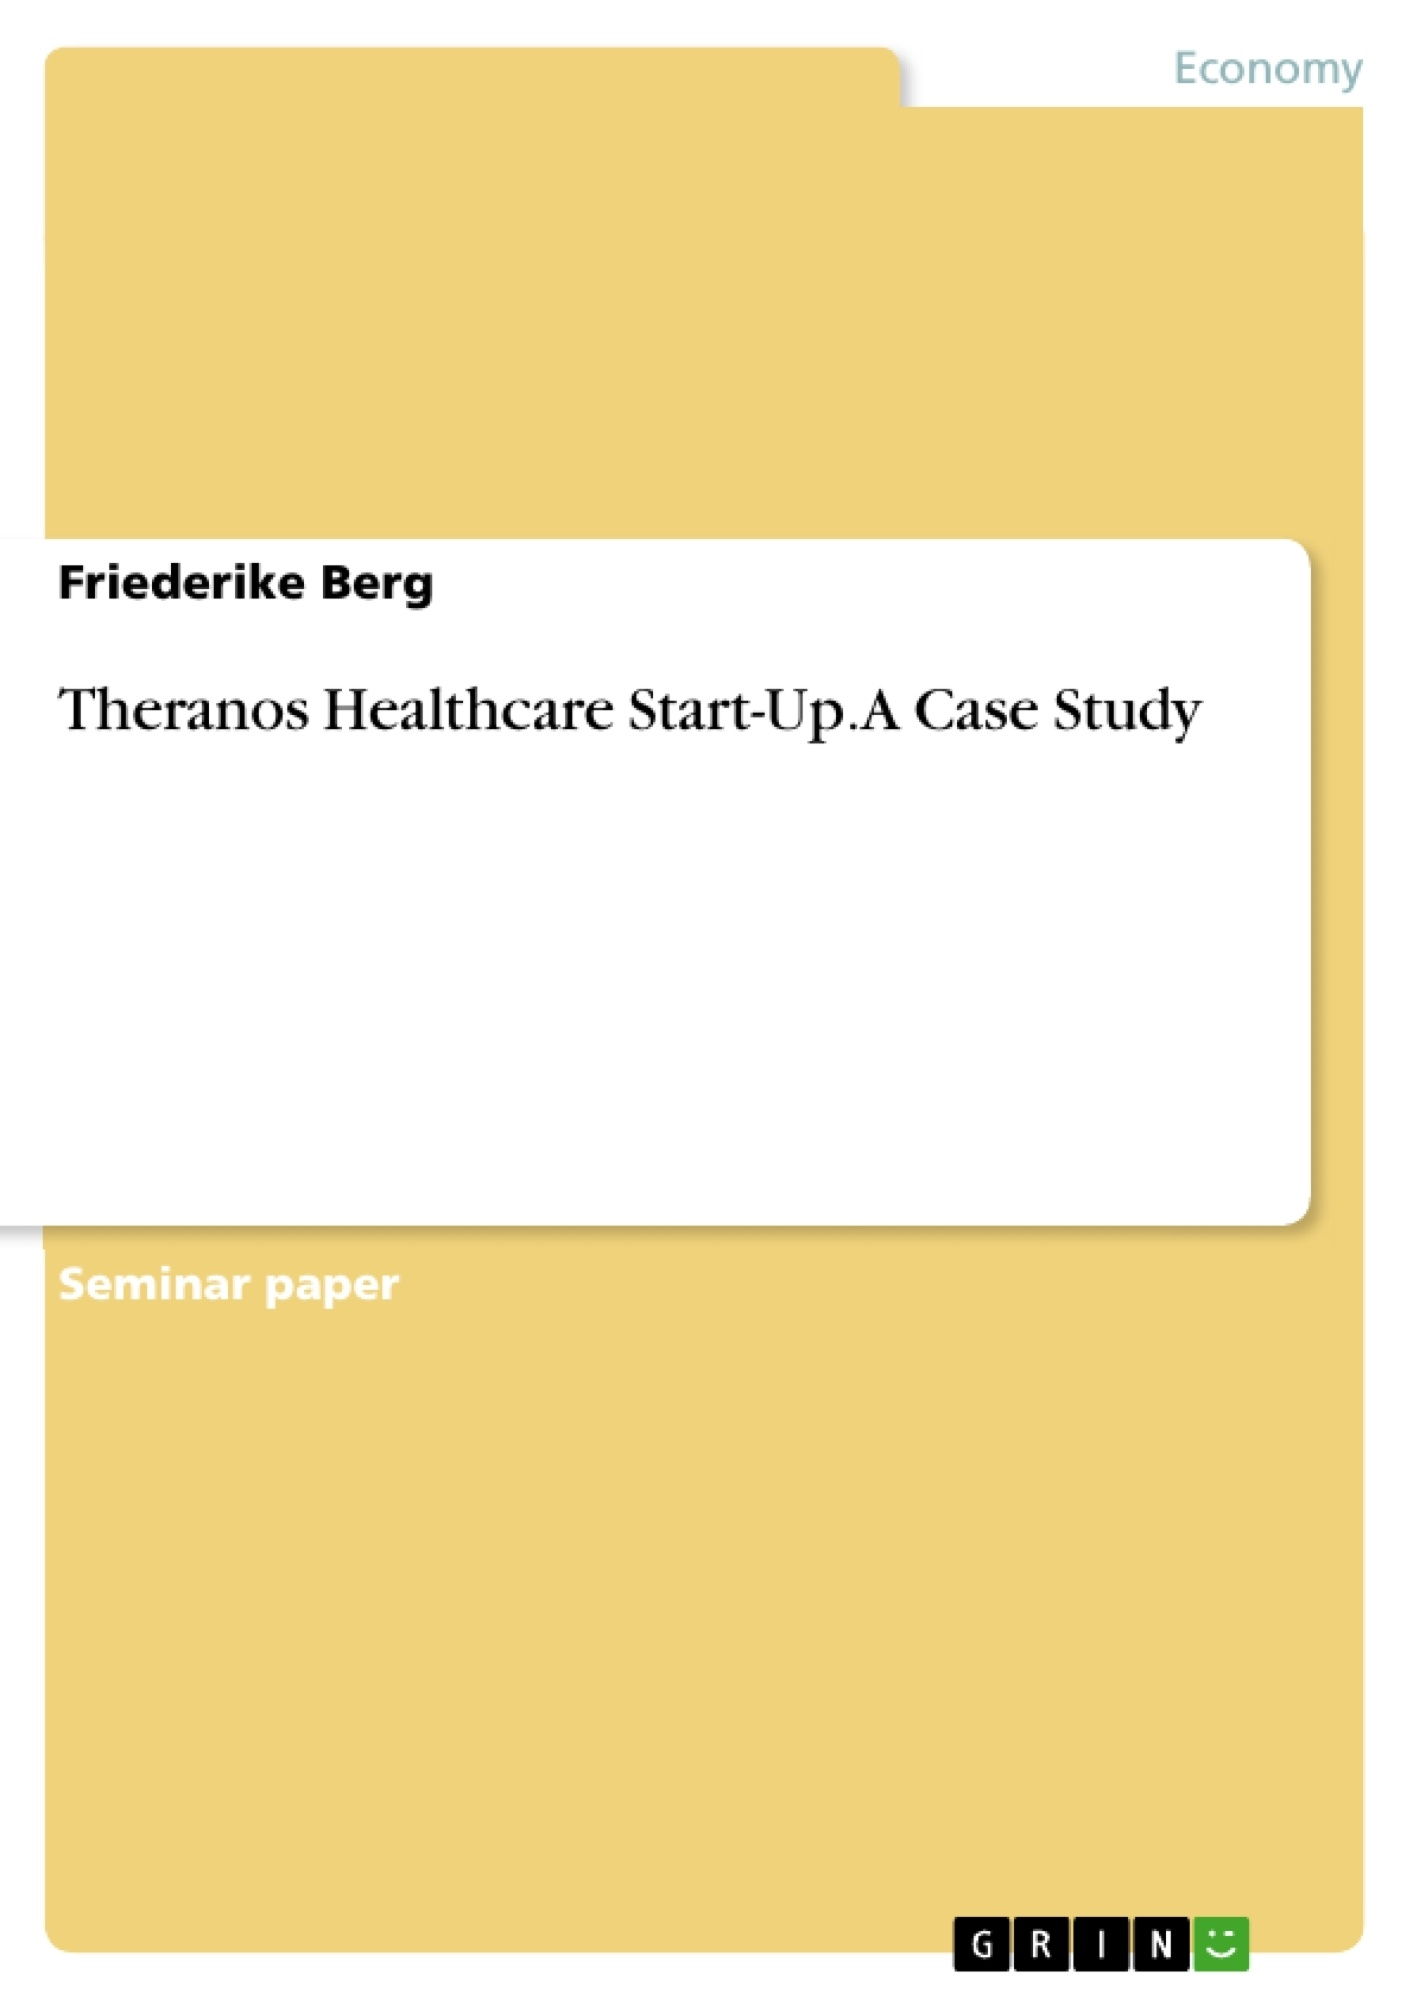 Title: Theranos Healthcare Start-Up. A Case Study